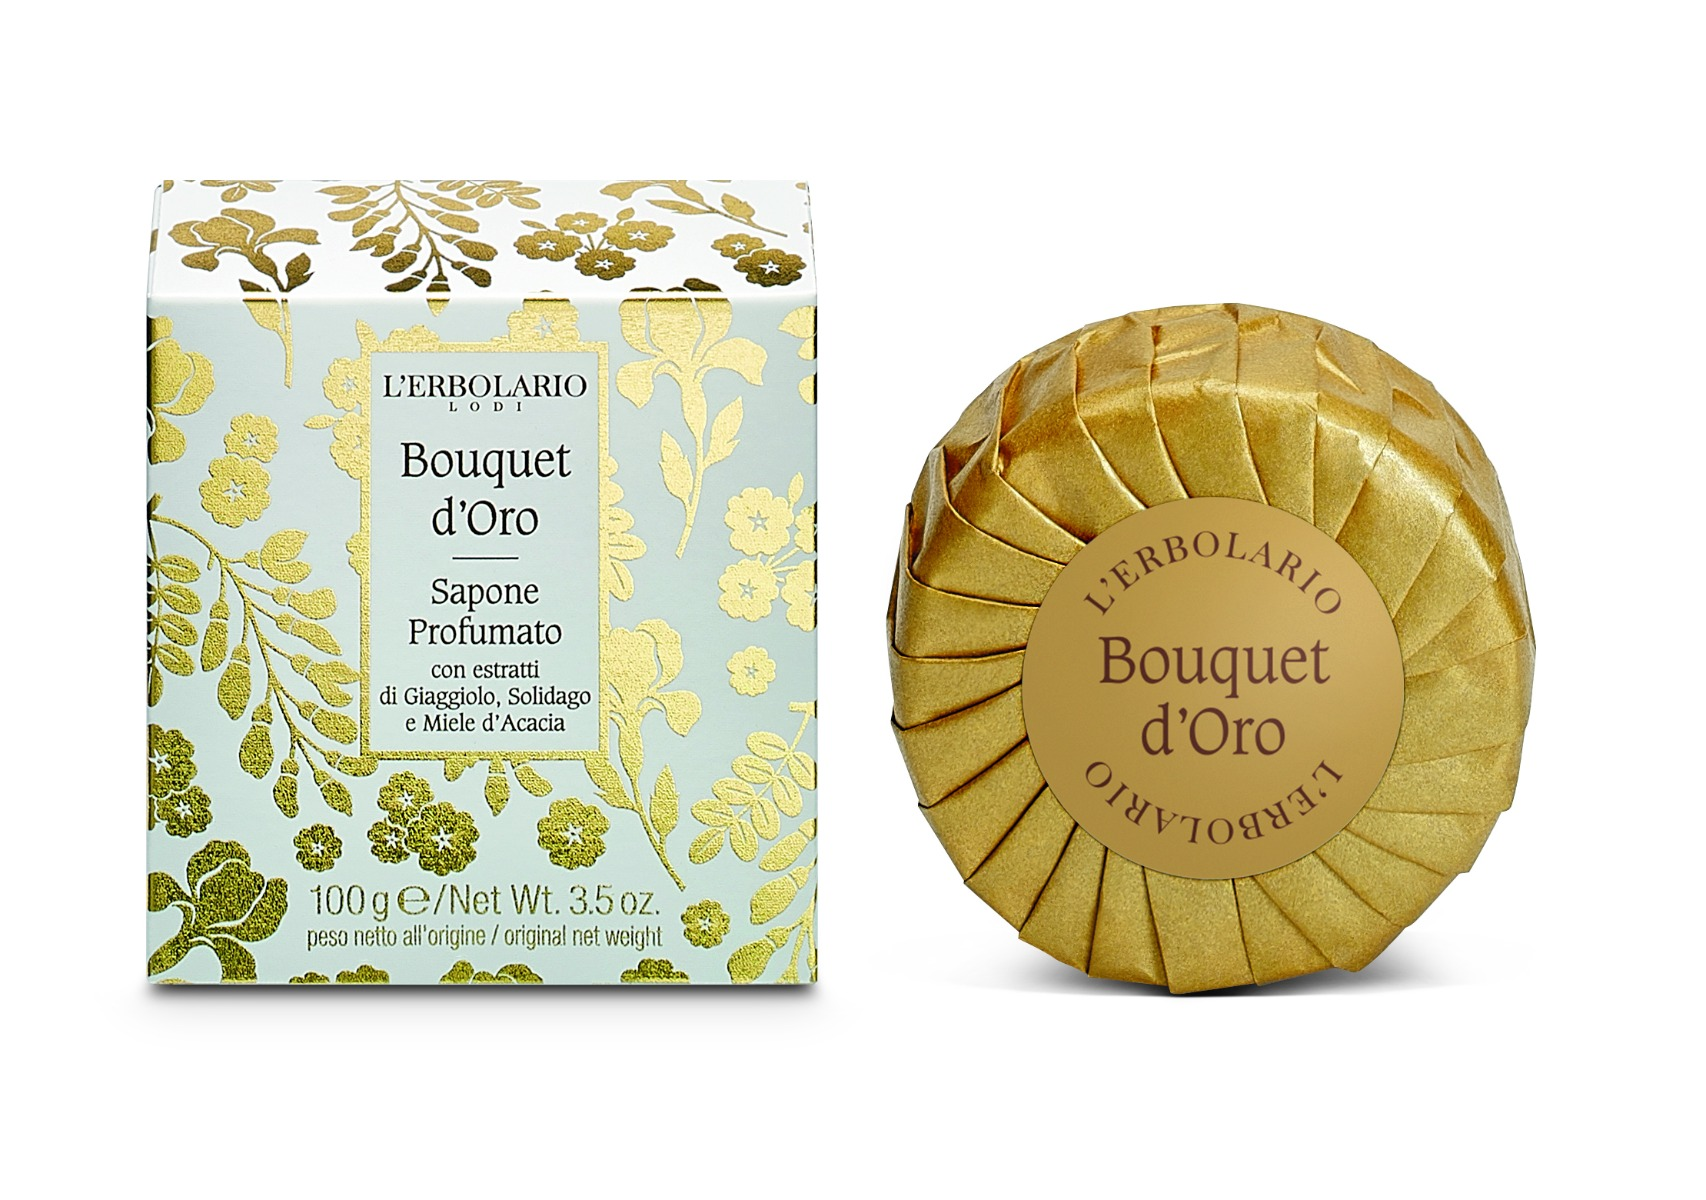 Sapun Parfumat Golden Bouquet, 100g, L'erbolario imagine produs 2021